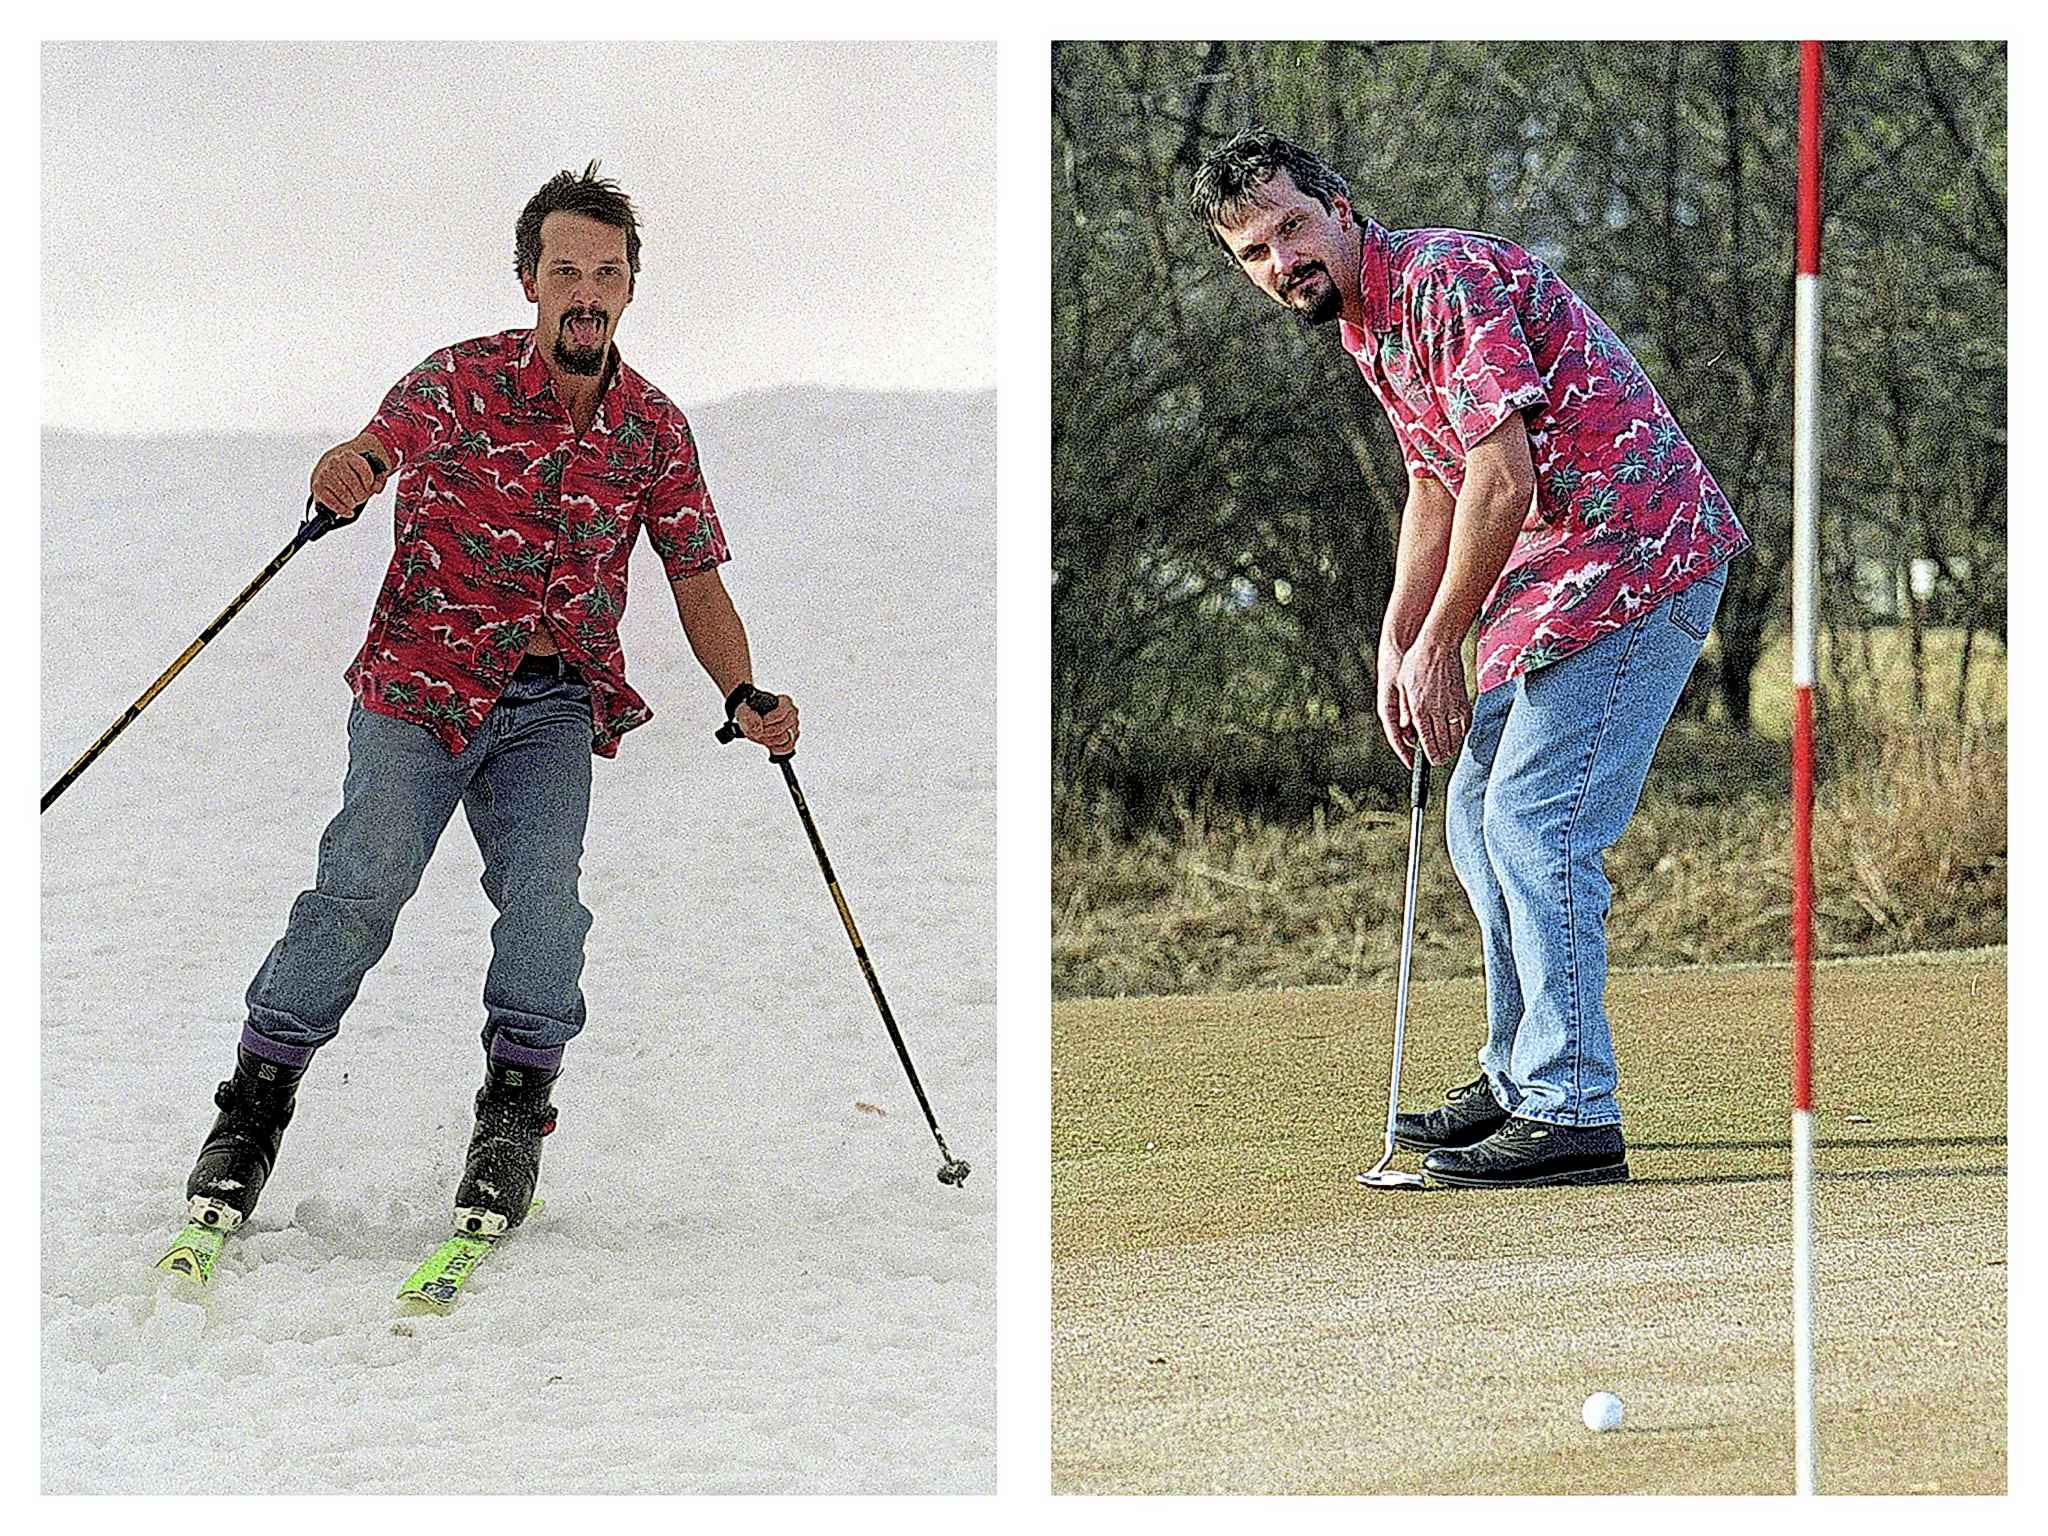 Paul Wiecek skis and golfs on the same day in December 1999.